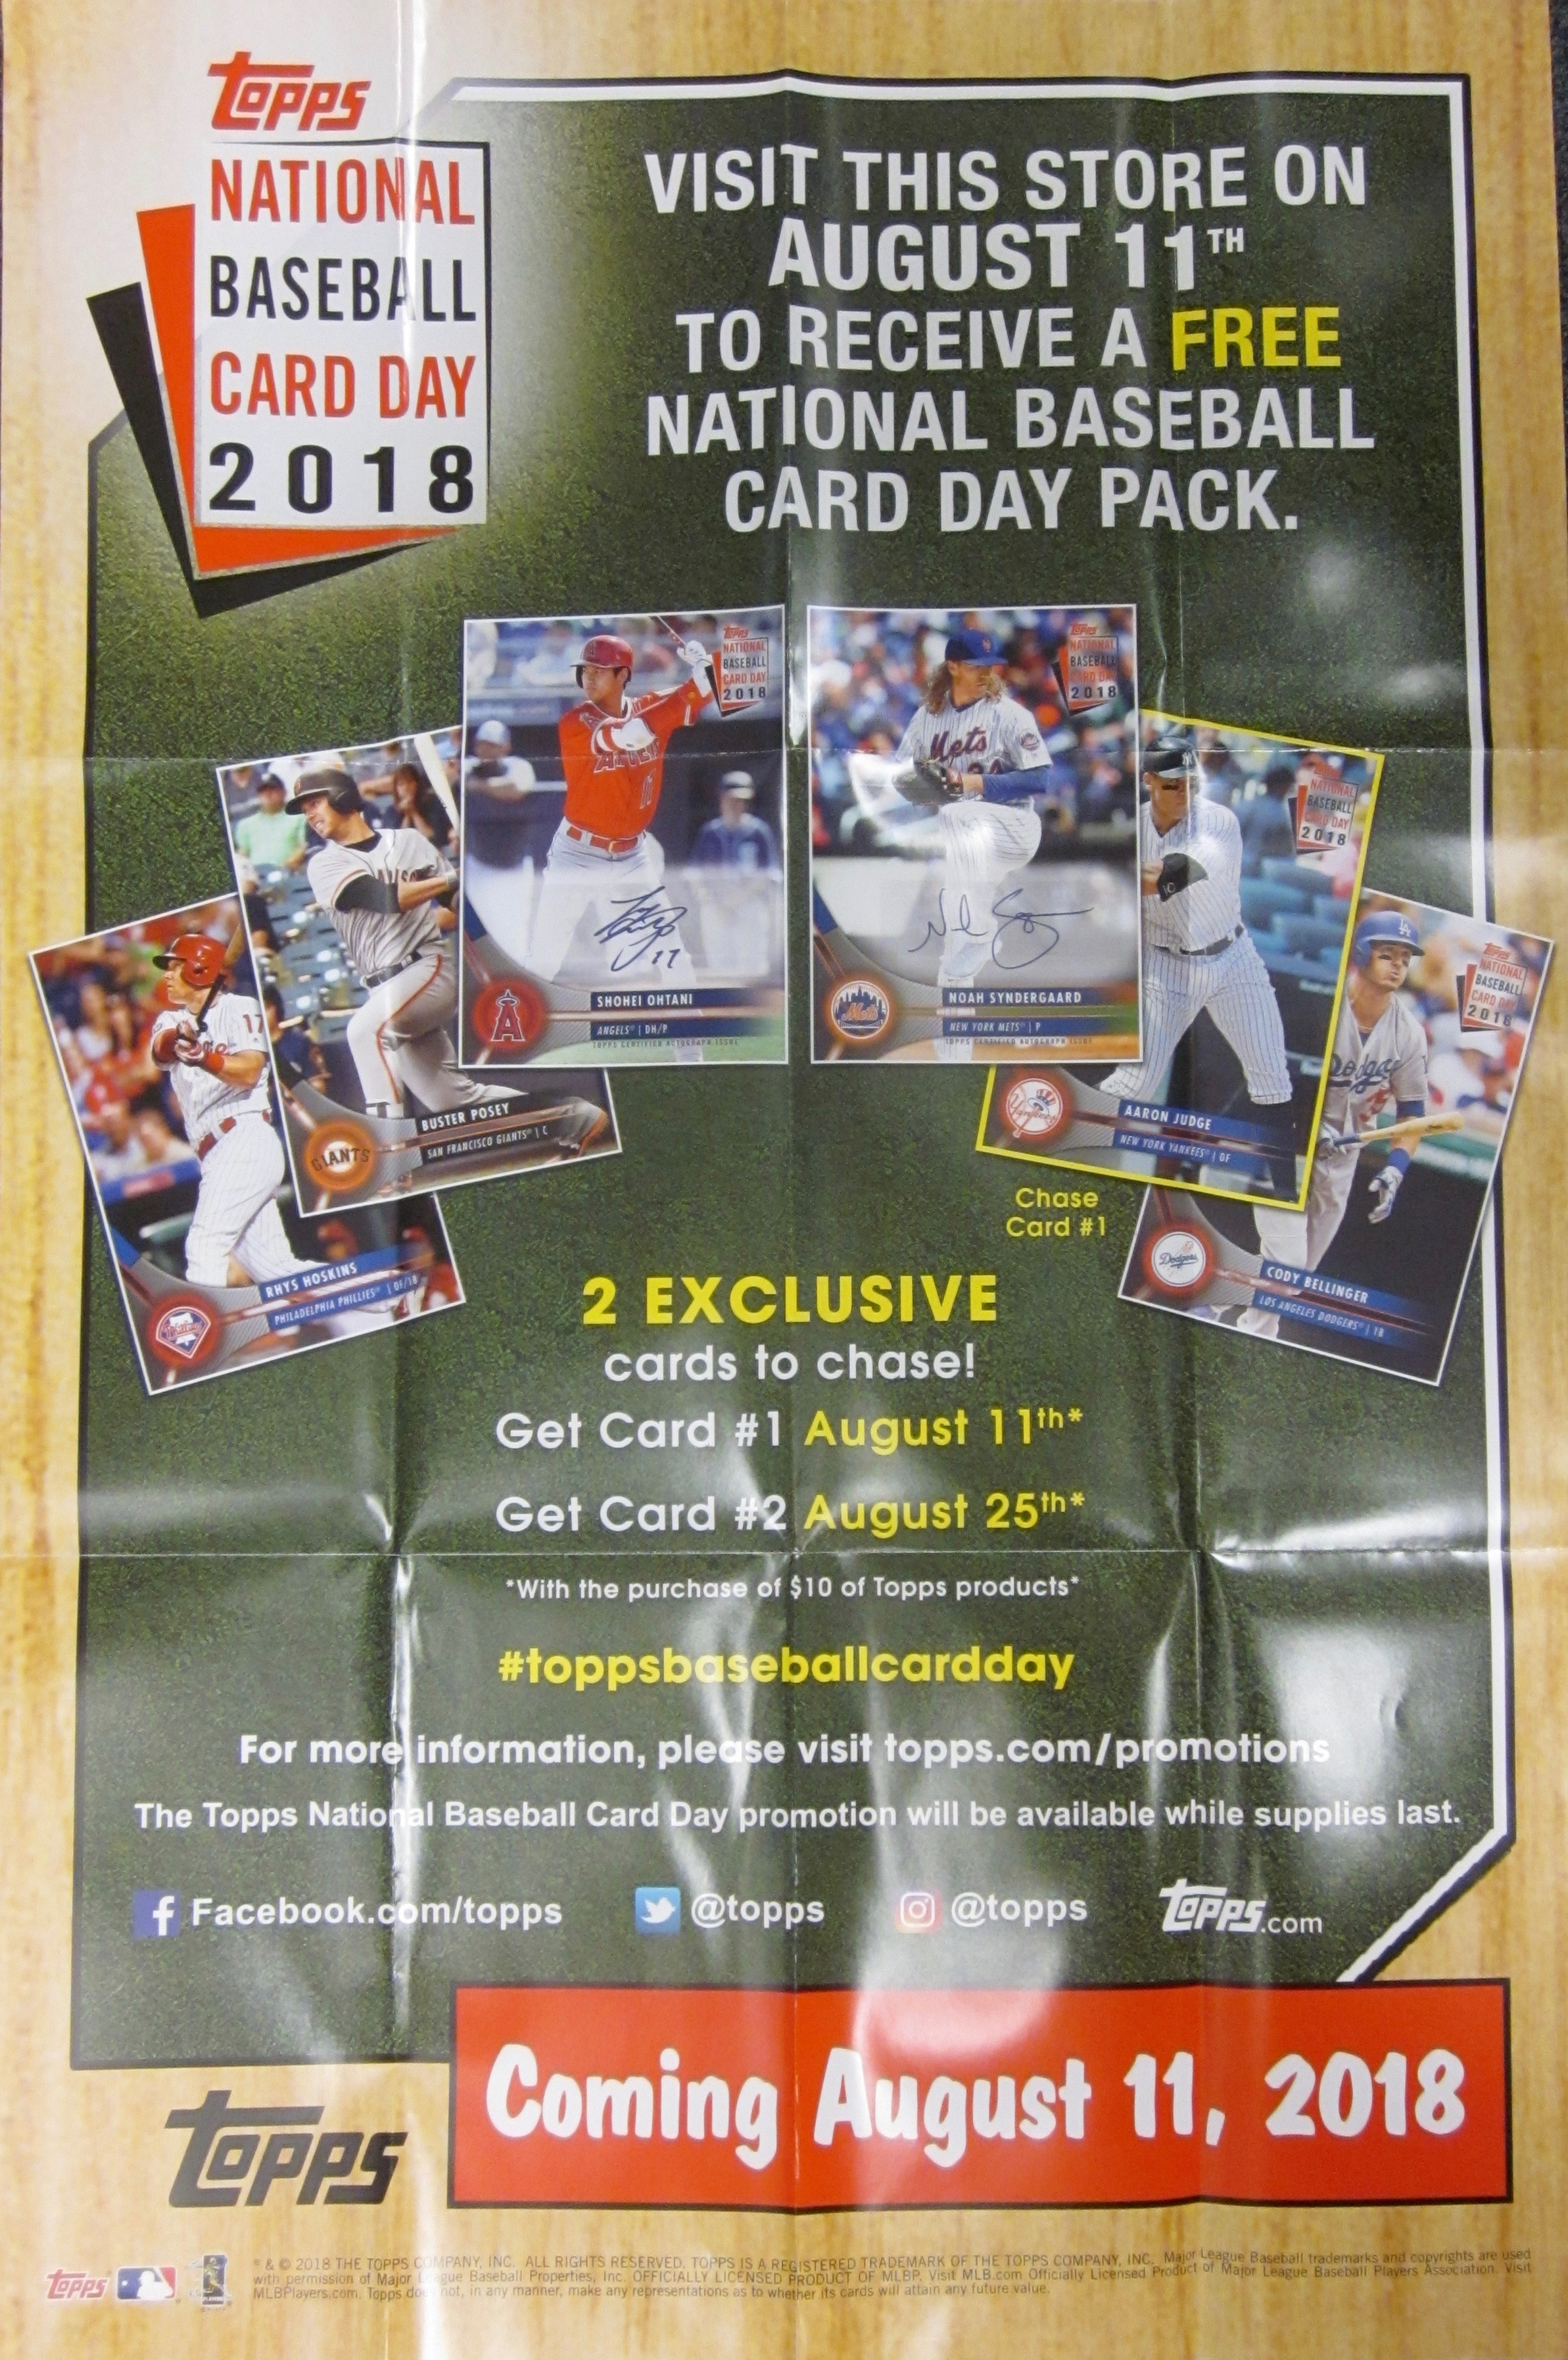 2018 Topps National Baseball Card Pack Day Is Coming In August 11th